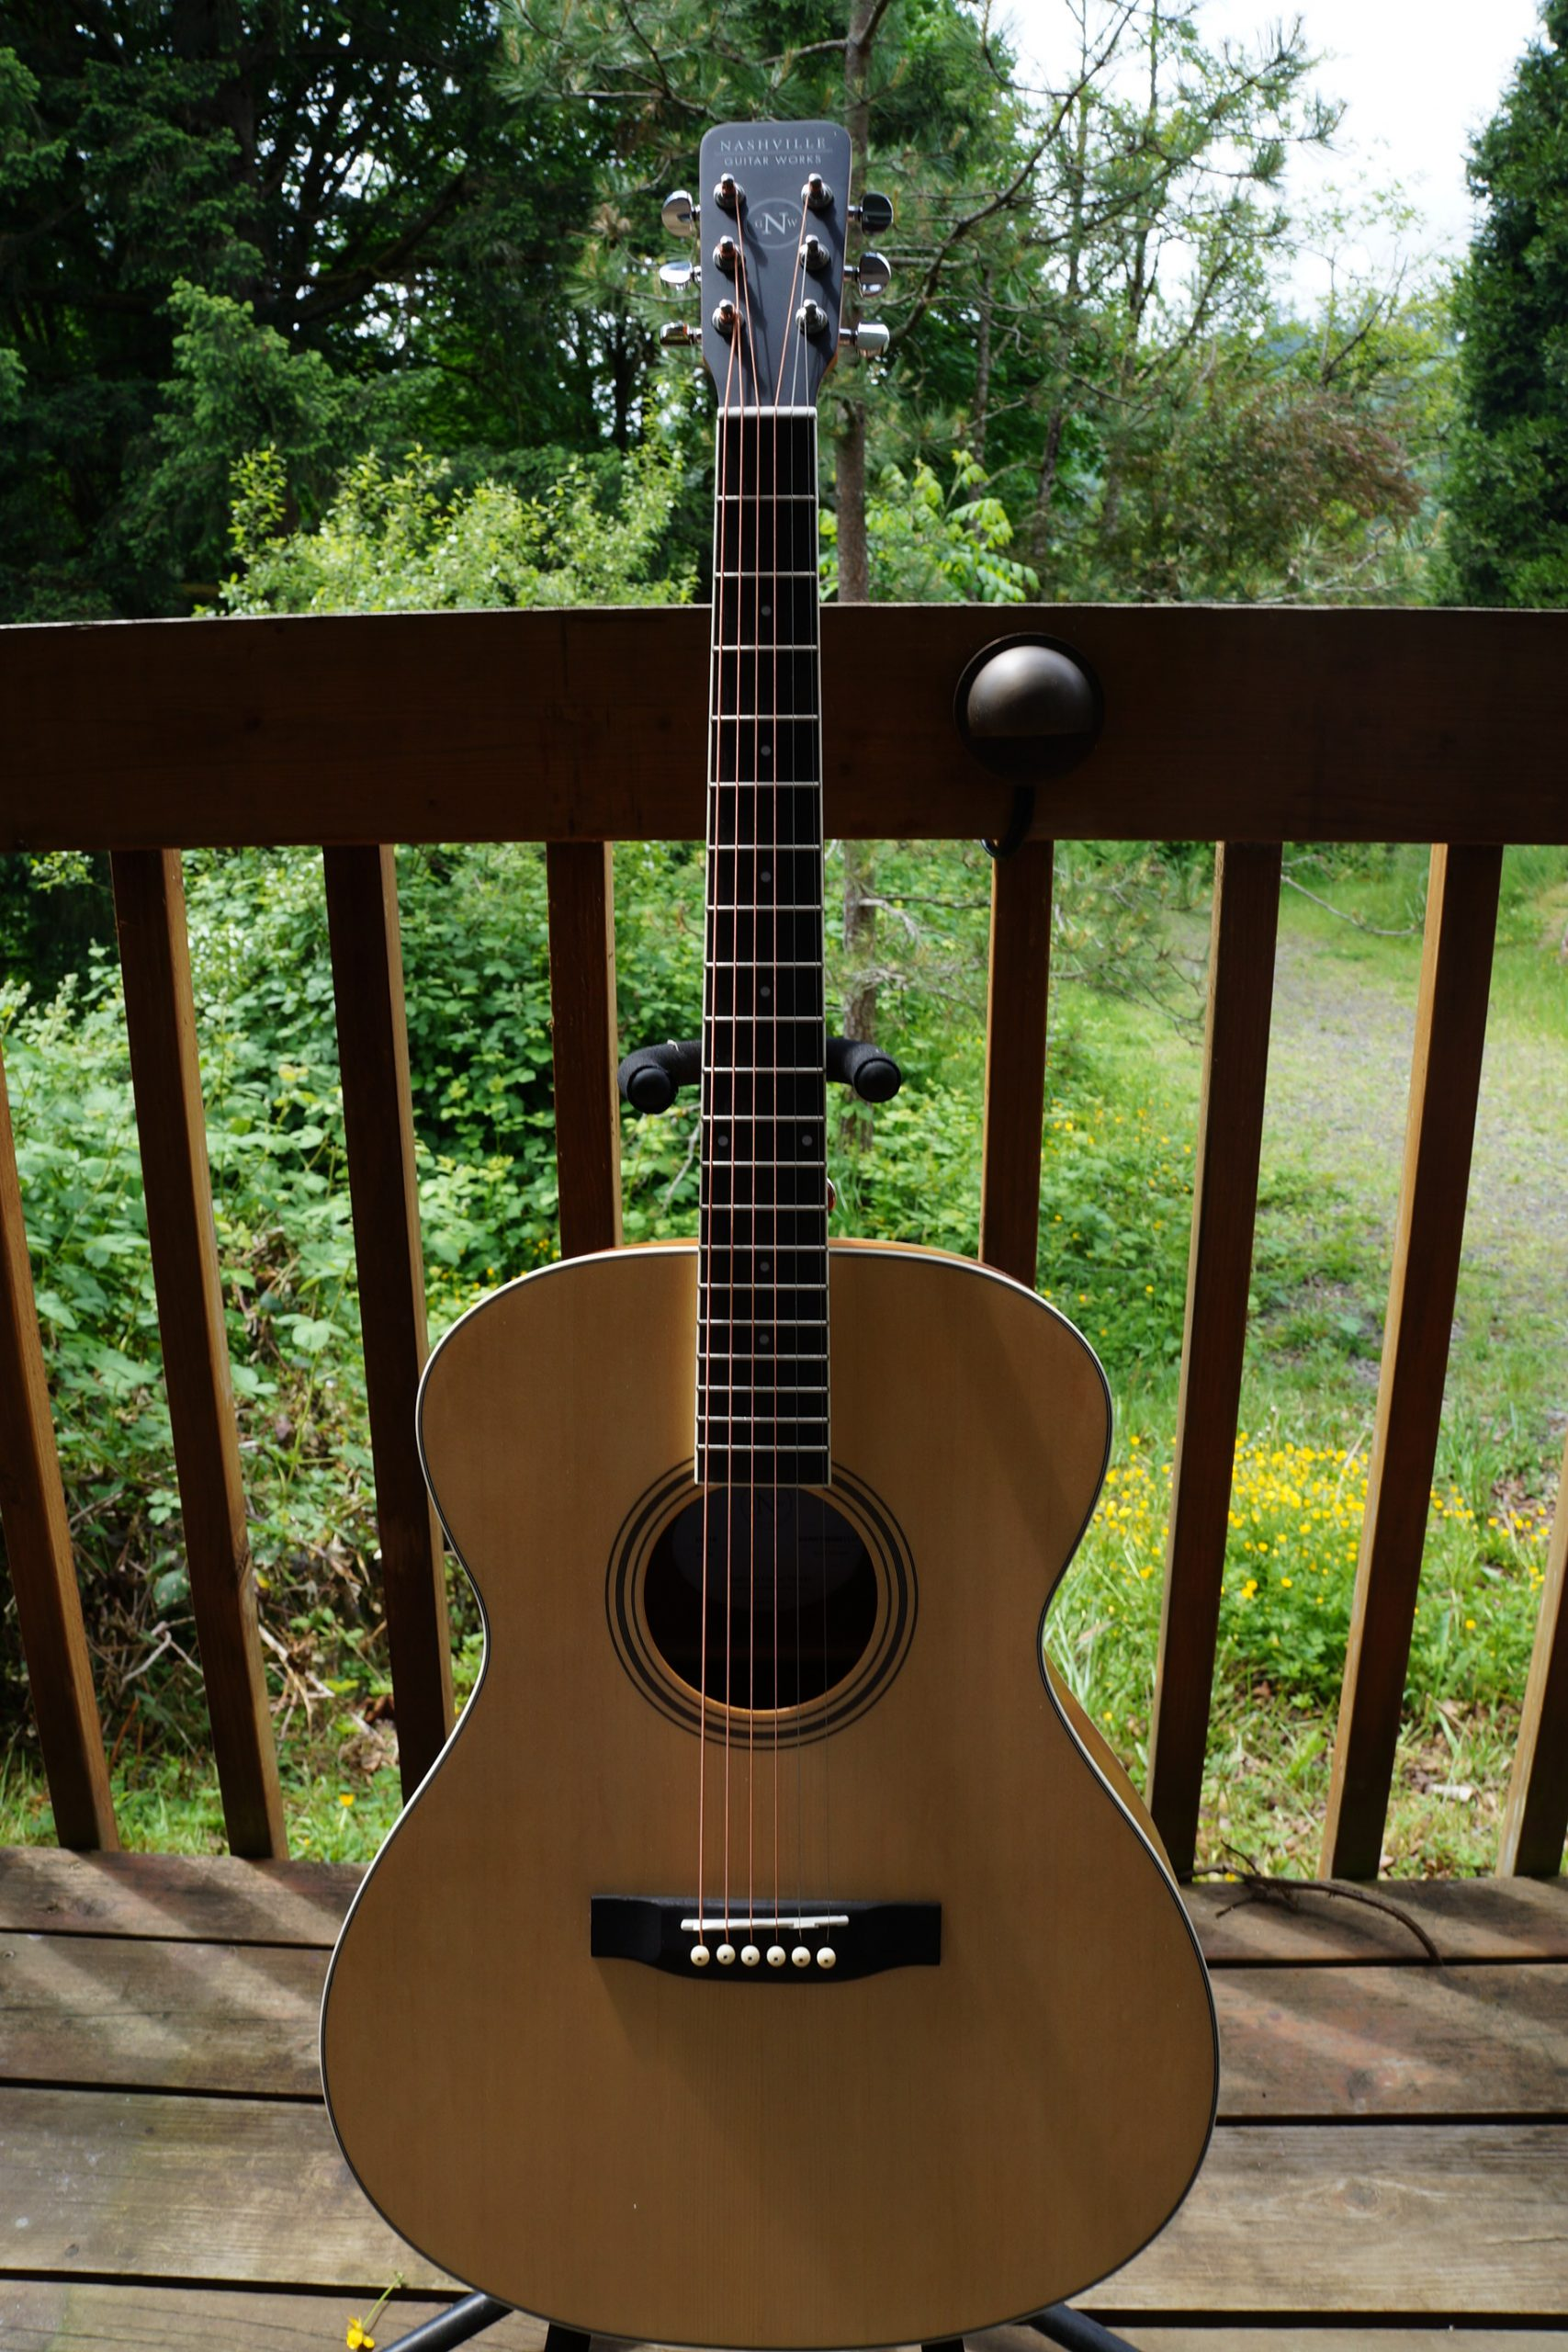 Nashville Guitar Works Dreadnaught Acoustic Guitar: Natural Satin Finish (NEW) w/ Accessory Pack